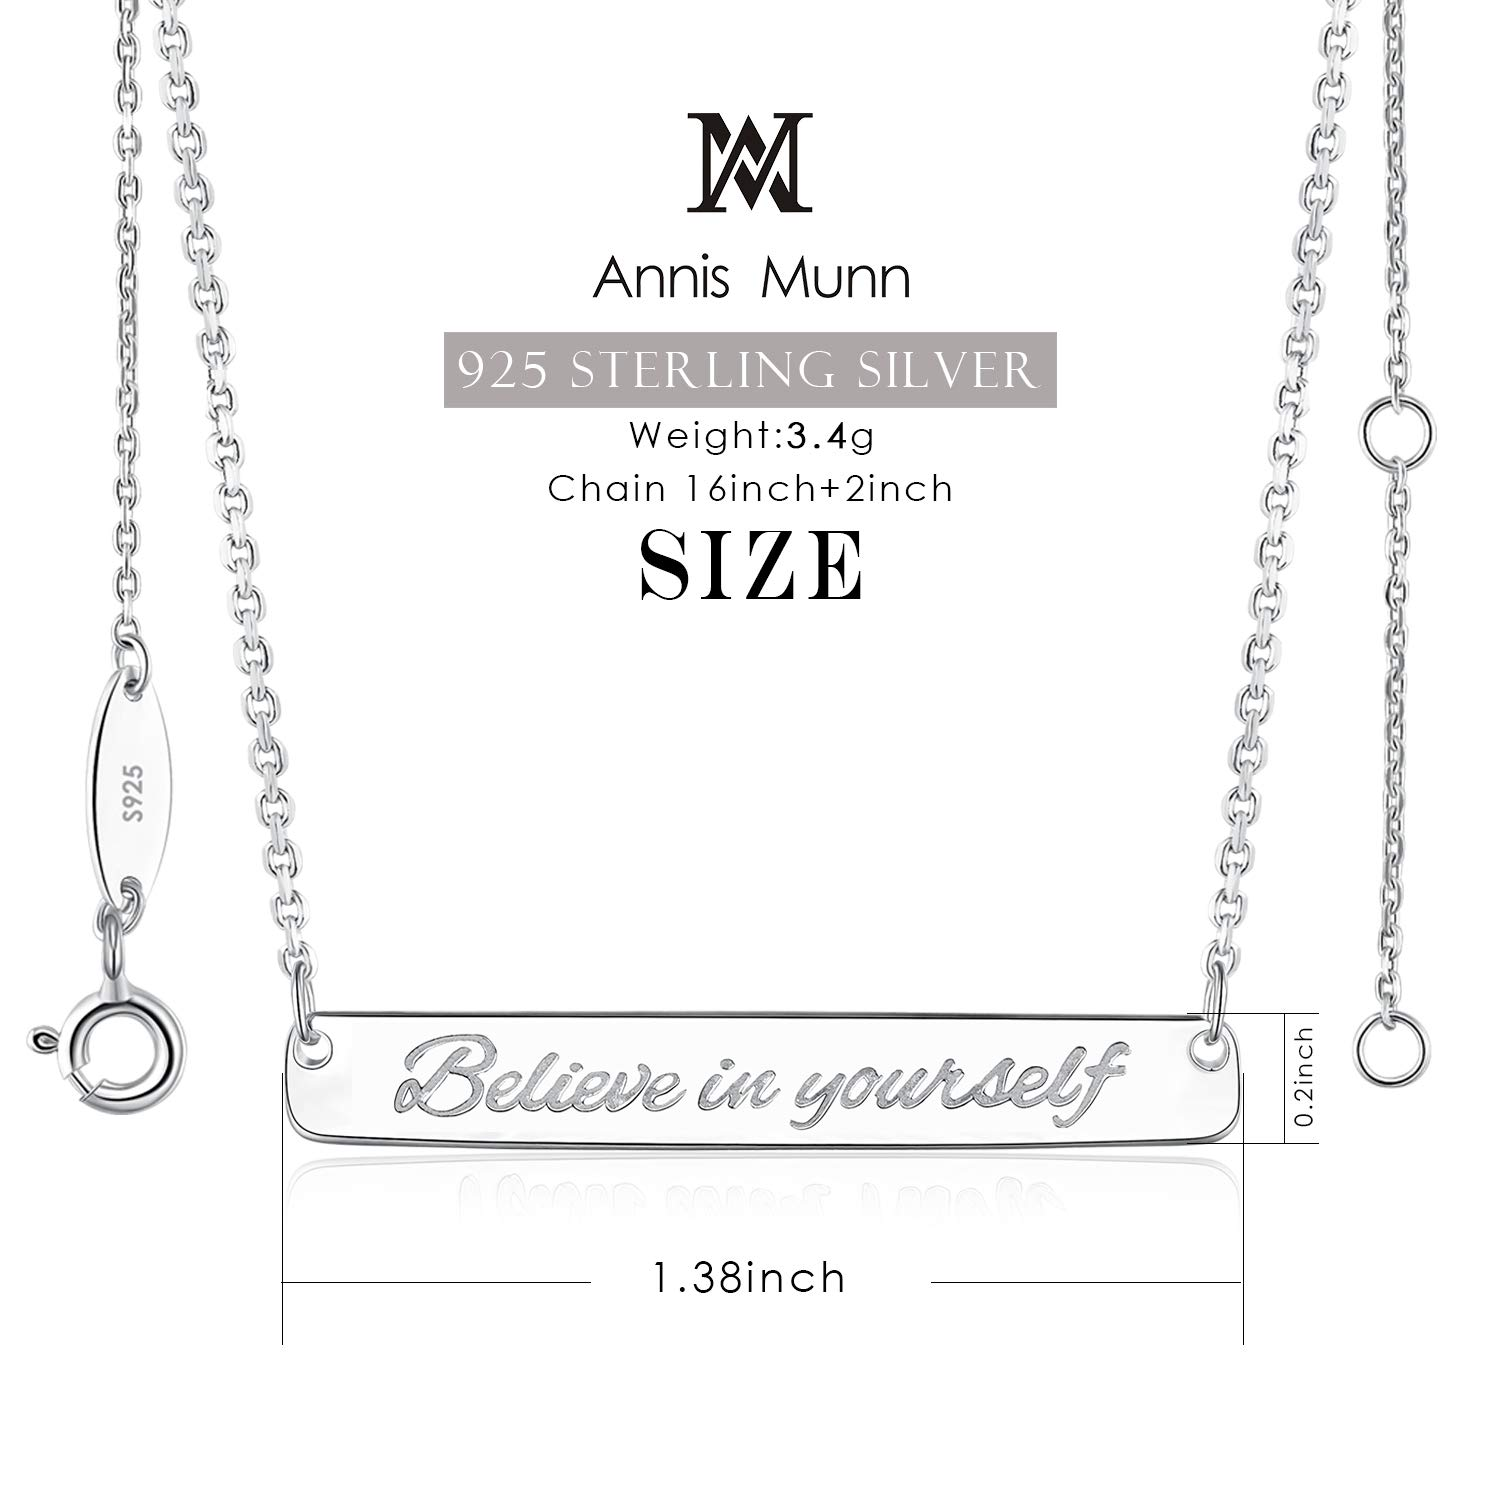 925 Sterling Silver Bar Necklace Engraved Believe in Yourself Christmas Day Jewelry Birthday Gift for Girls and Women Annis Munn Believe Necklace